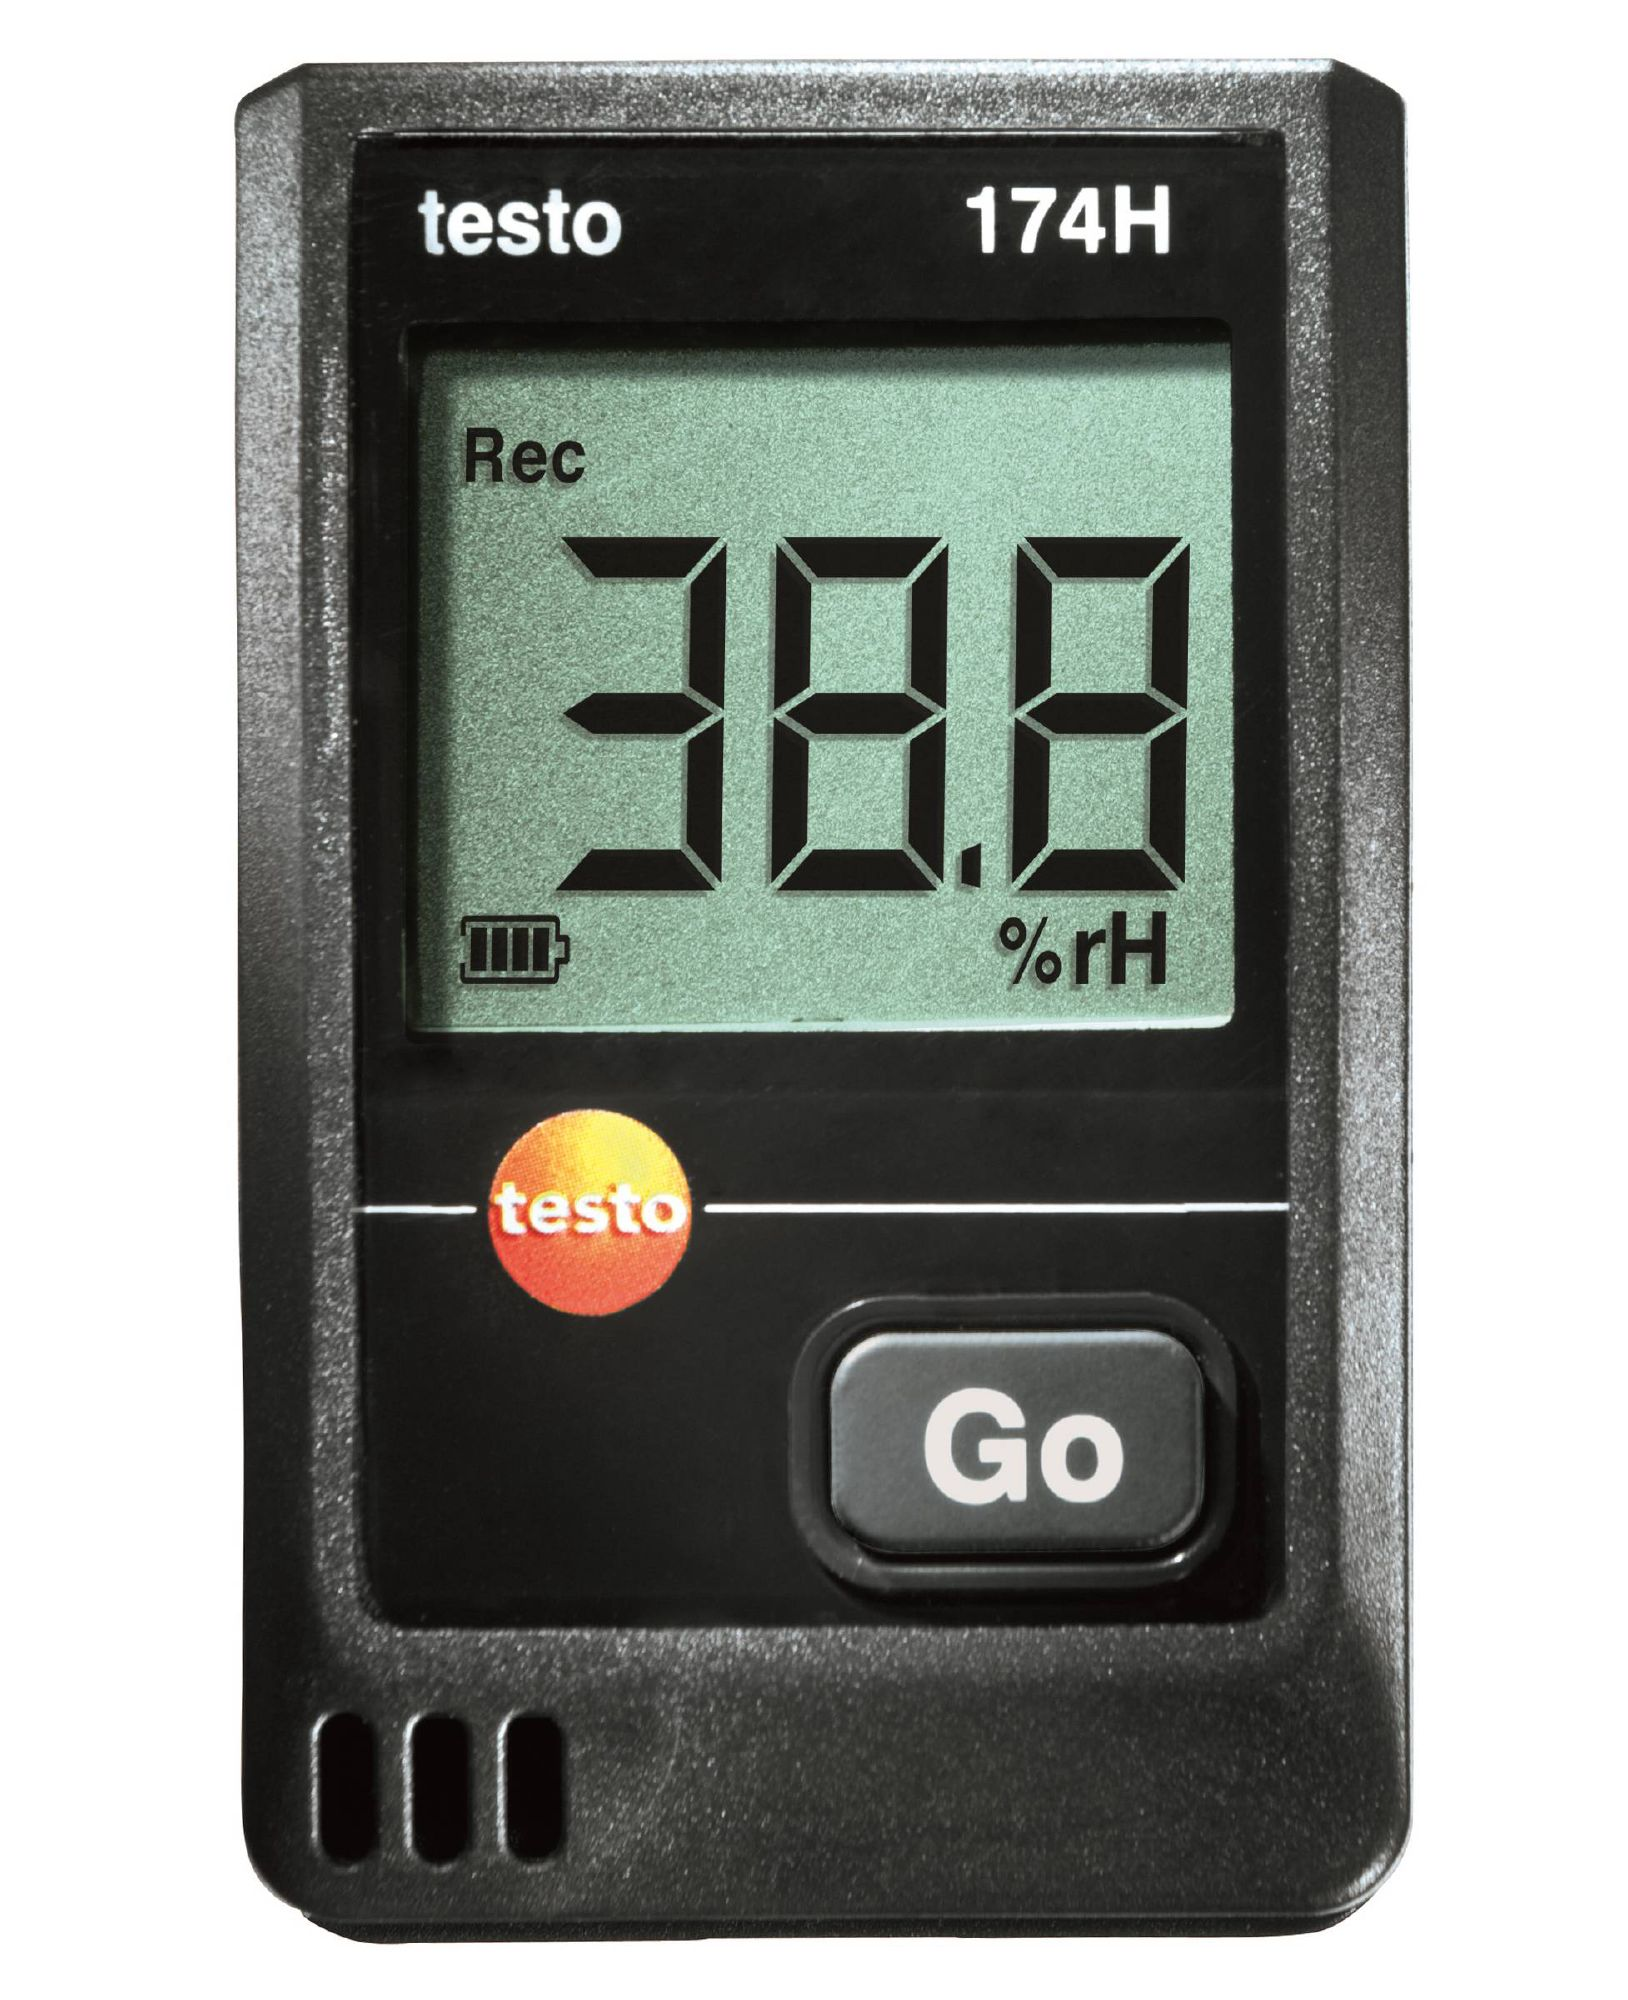 teso 174H Product · testo 174 Product